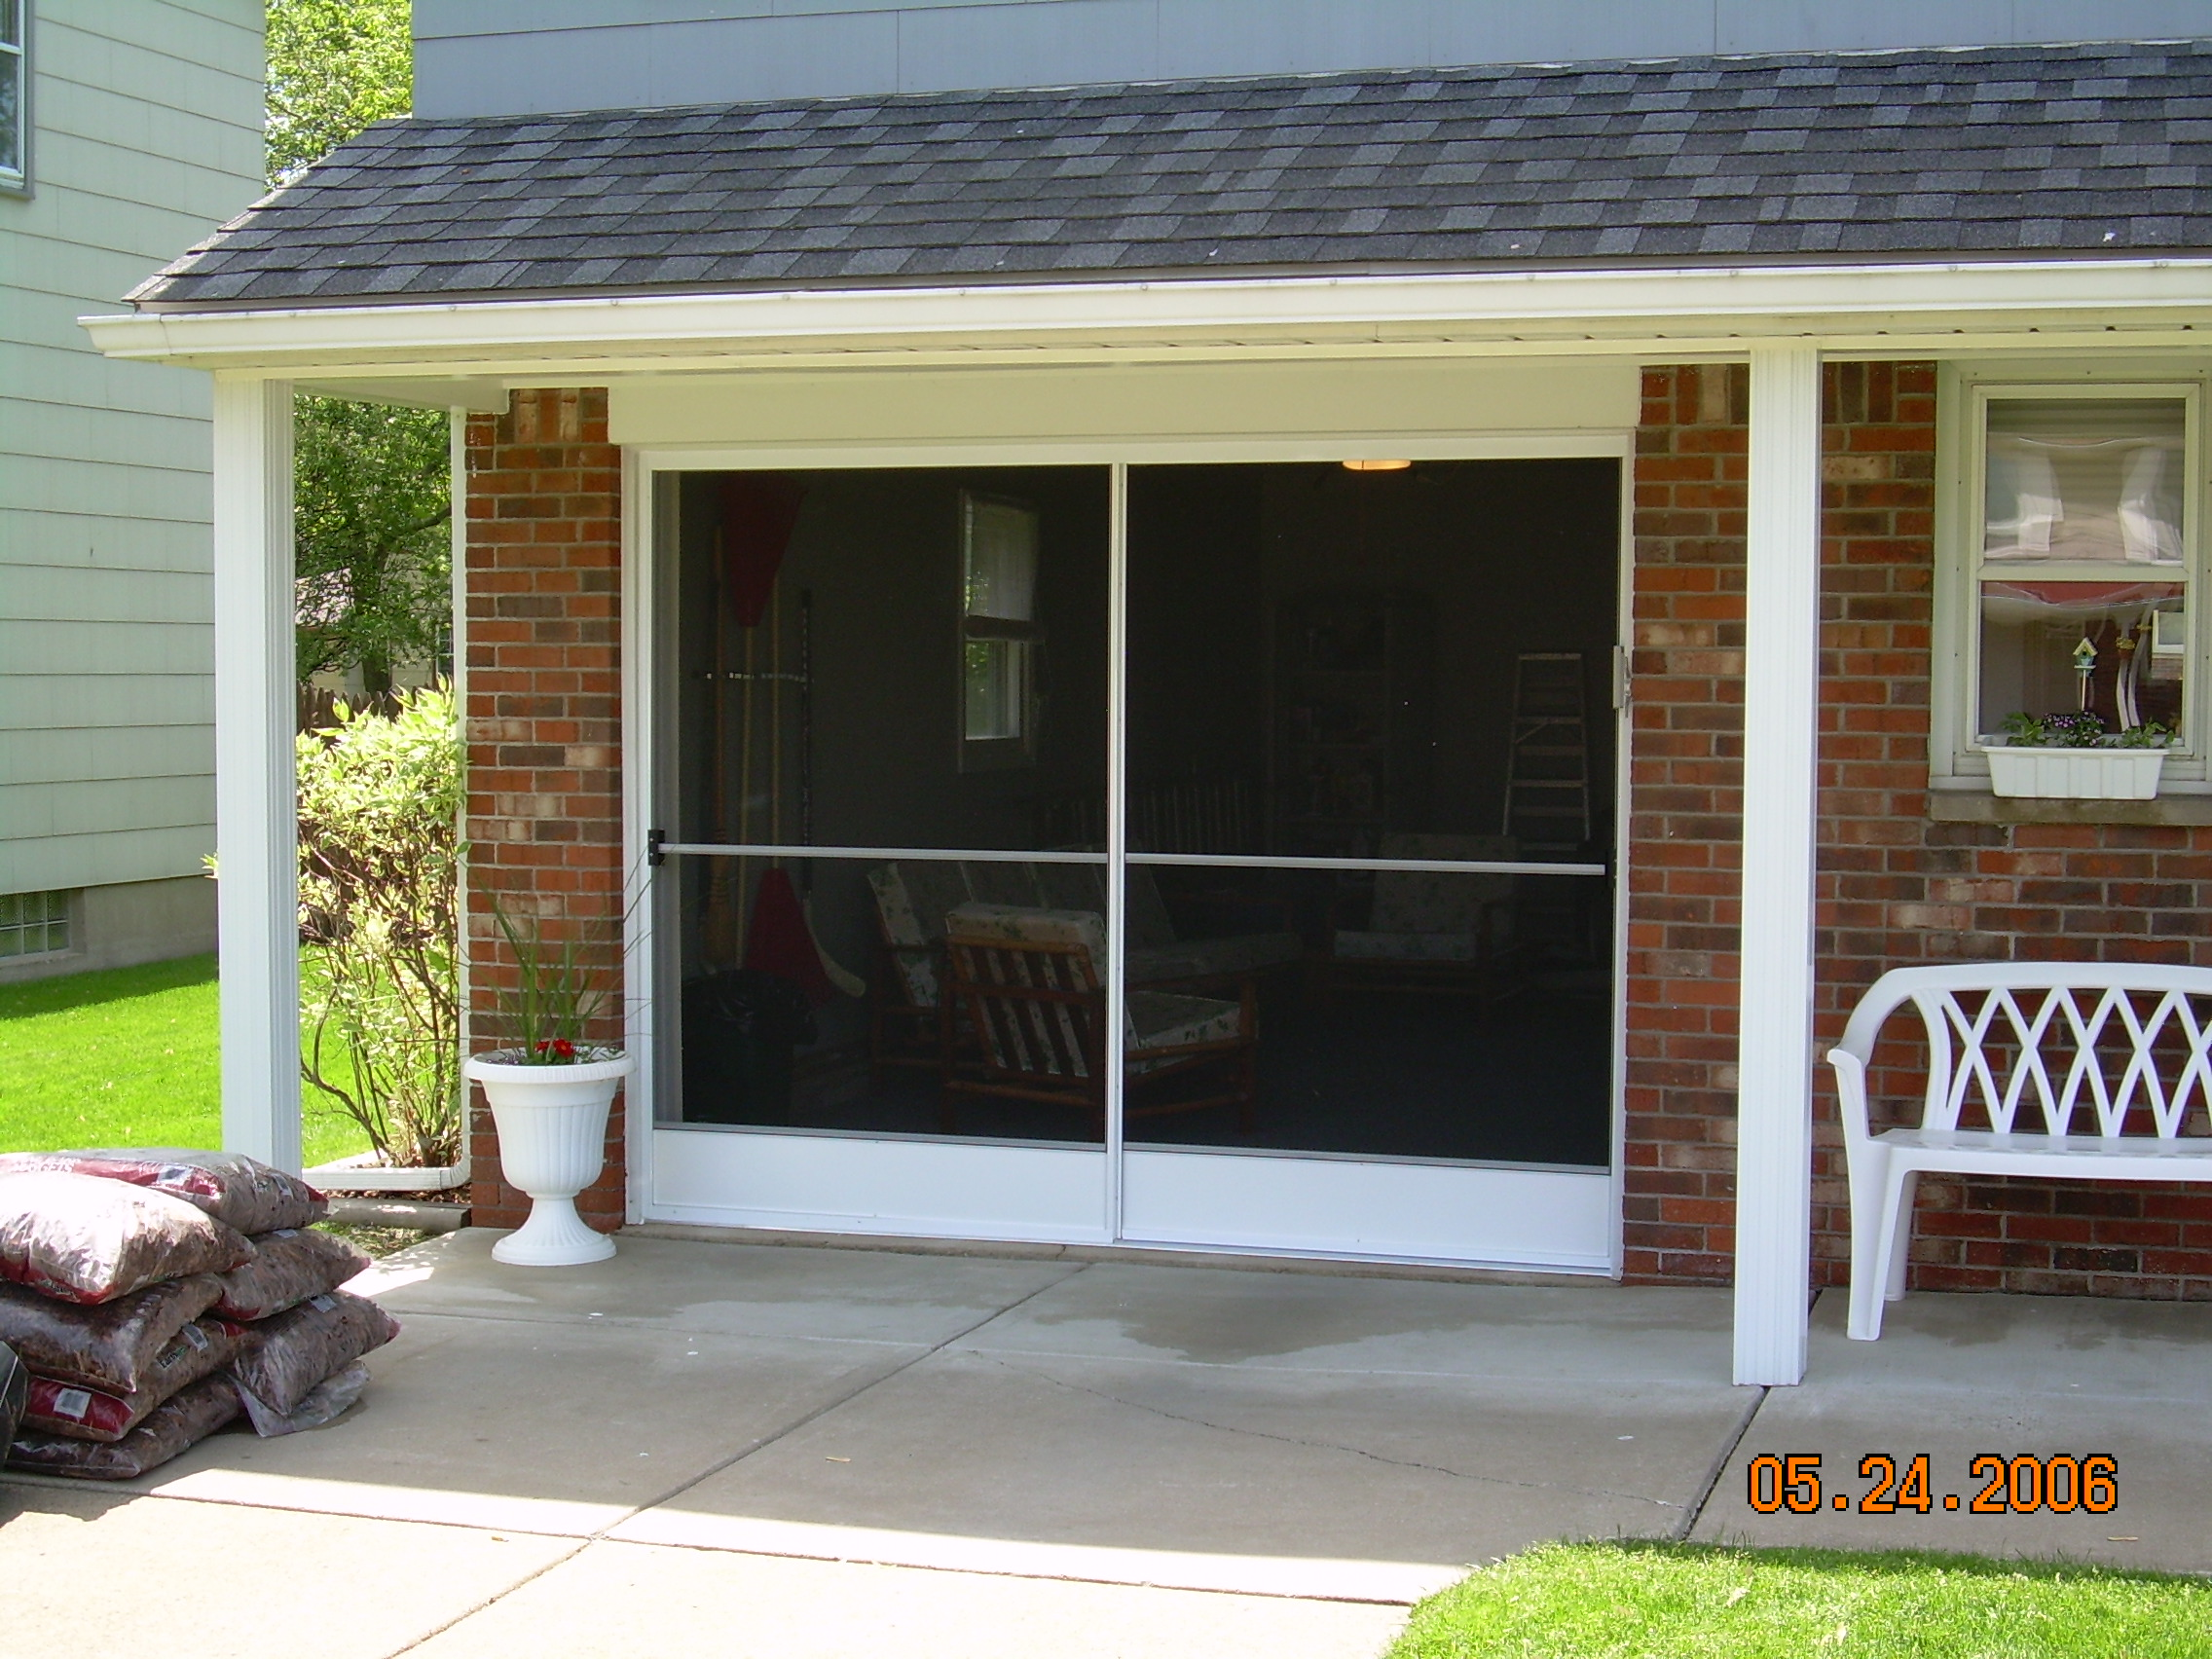 Garage screen door patio enclosure installation gallery garage screen sliding door installation solutioingenieria Image collections